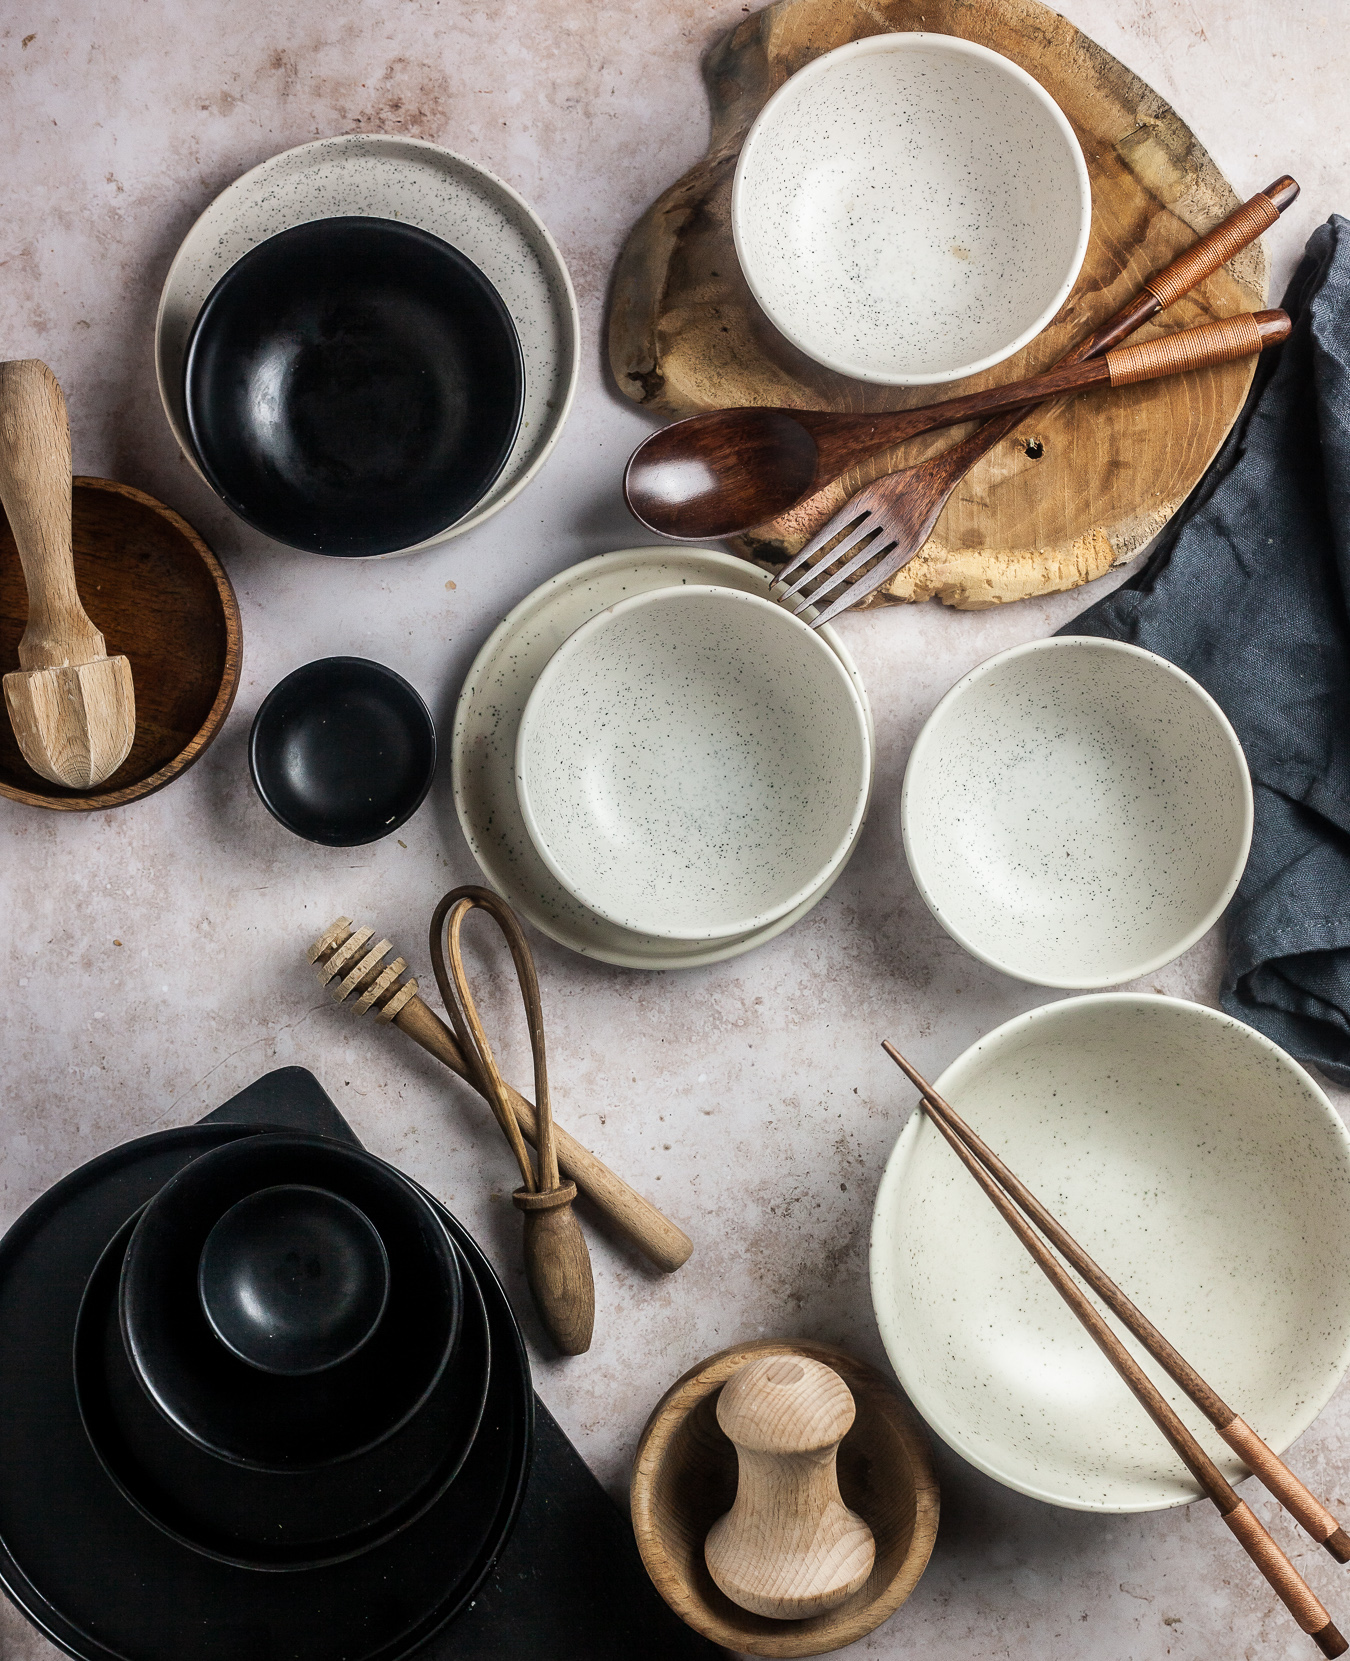 How to choose props for food photography